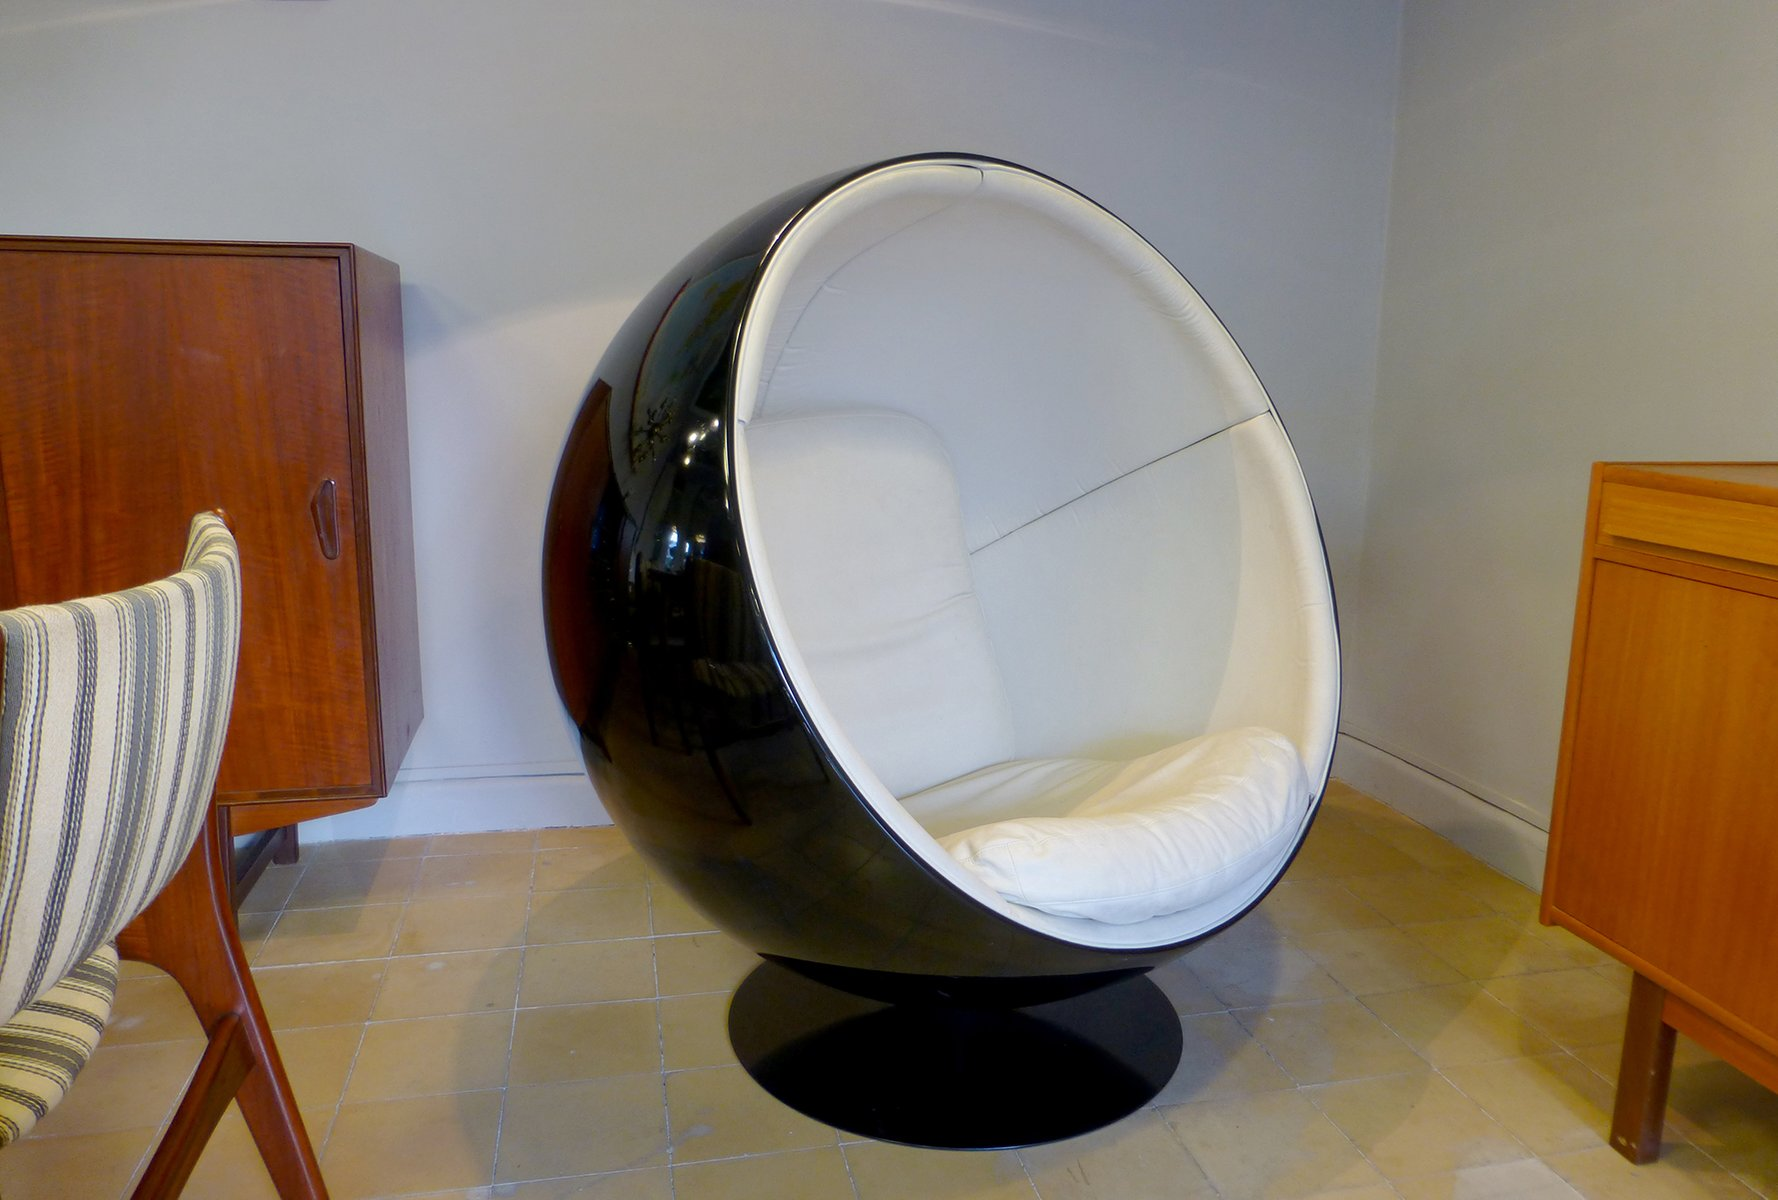 Black ball chair by eero aarnio for adelta for sale at pamono - Ball chair by eero aarnio ...